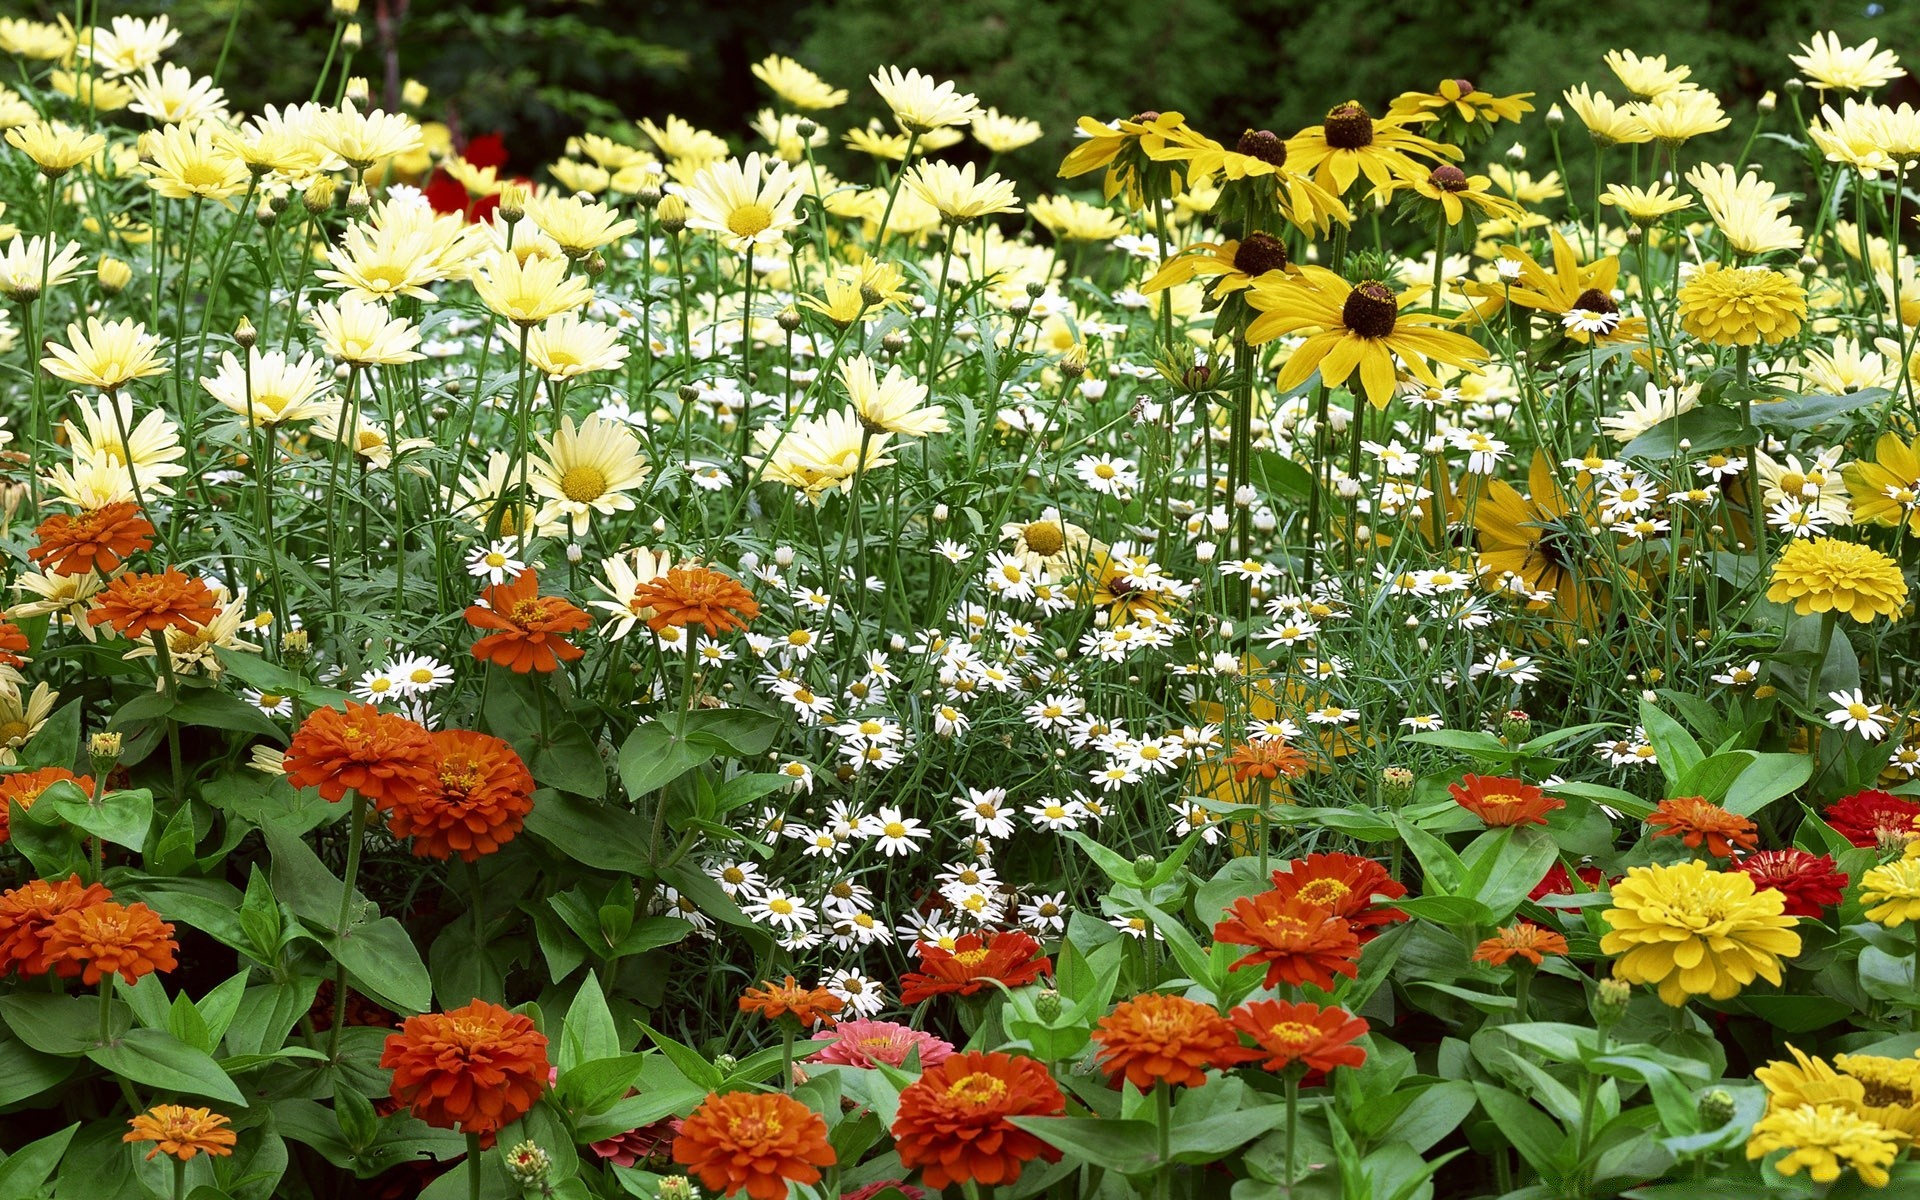 flowers flower flora nature garden floral summer leaf blooming petal season color bouquet bright field hayfield marigold botanical growth vibrant